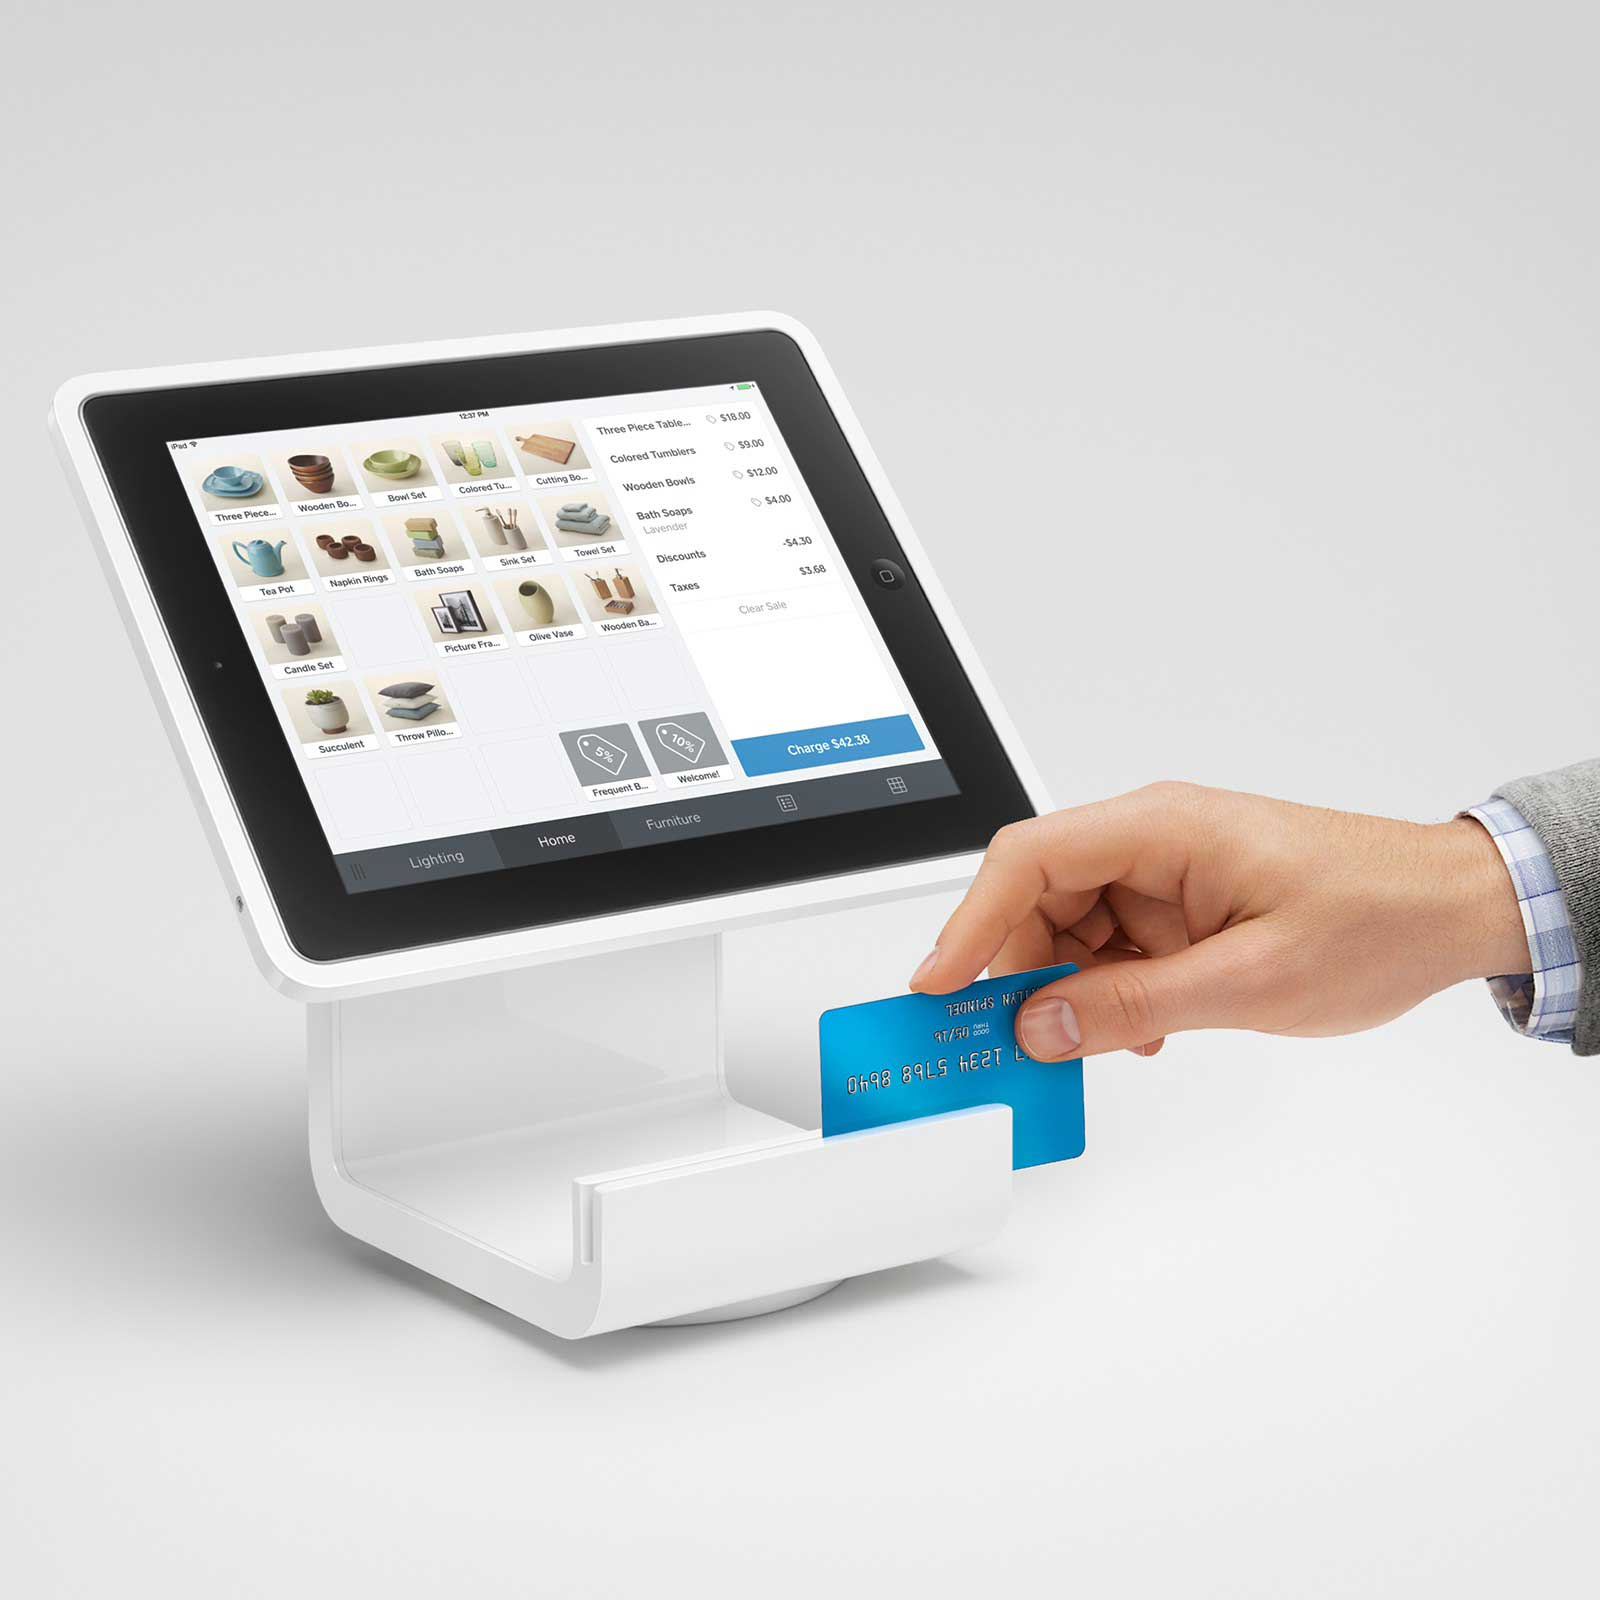 <strong>Square Stand                                   </strong>                                   The iPad holder and credit card reader launched last year with the goal of transforming an iPad into a point-of-sale. The sleek, white stand also offers an enhanced credit card reader, and can be adapted to include a cash register.